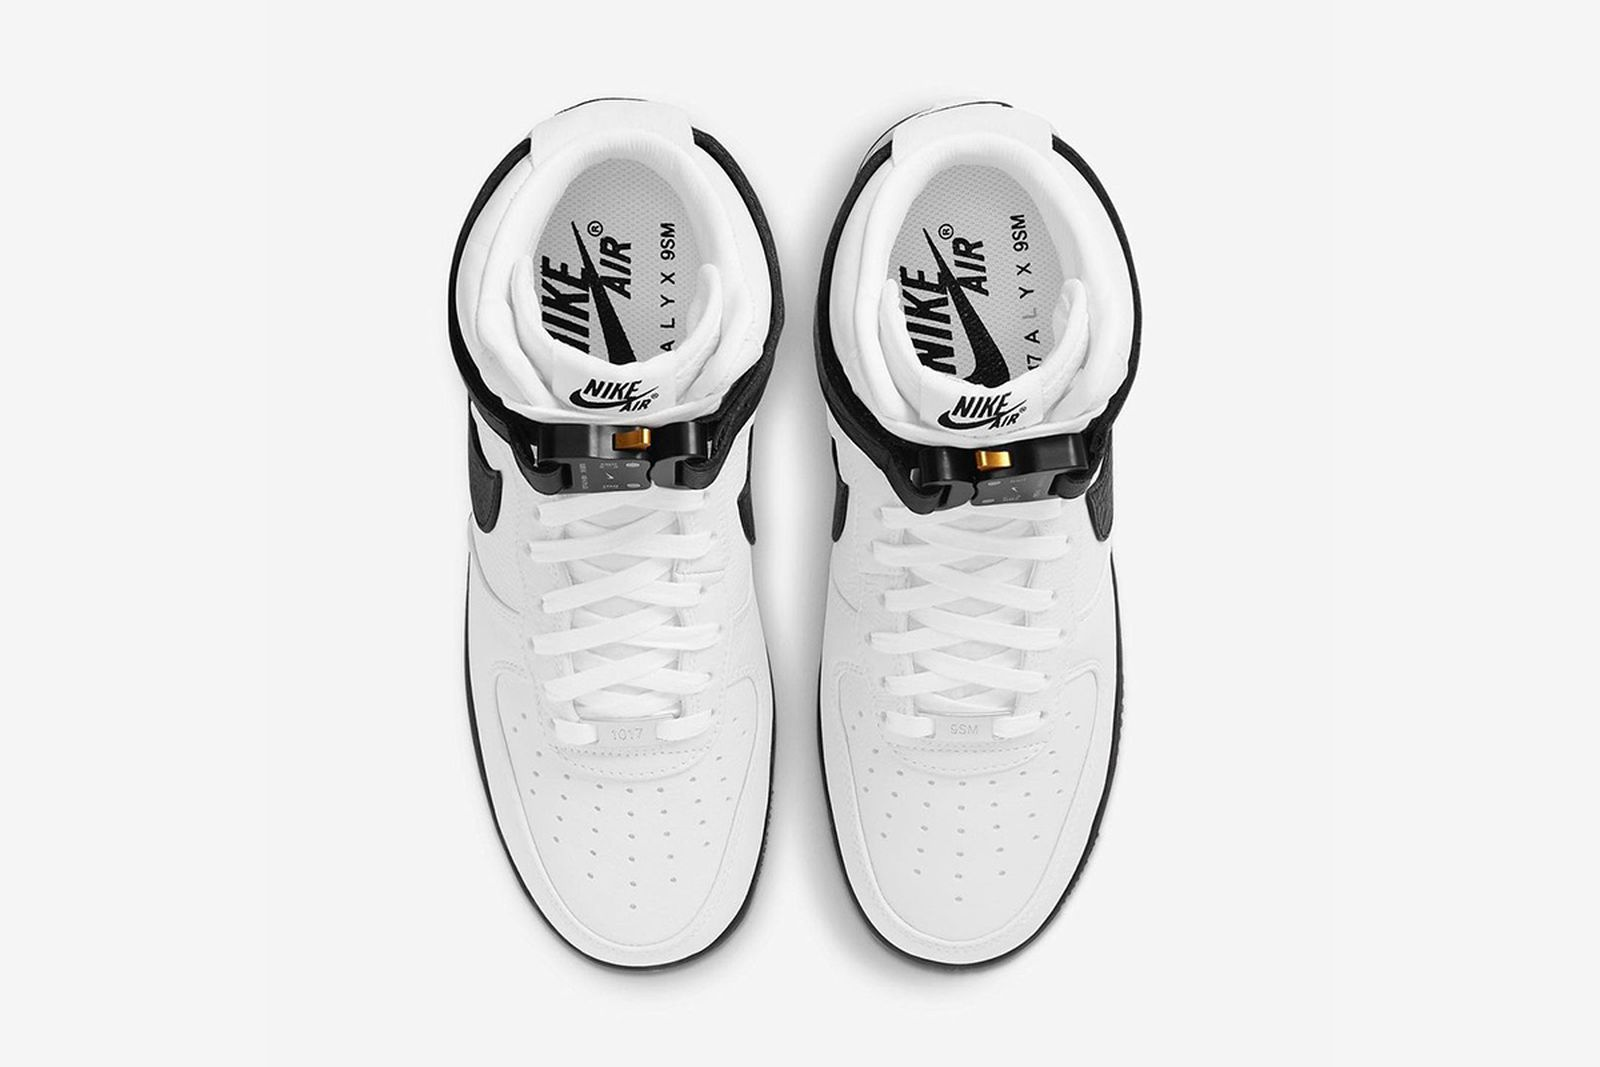 1017-alyx-9sm-nike-air-force-1-high-white-release-date-price-new-03